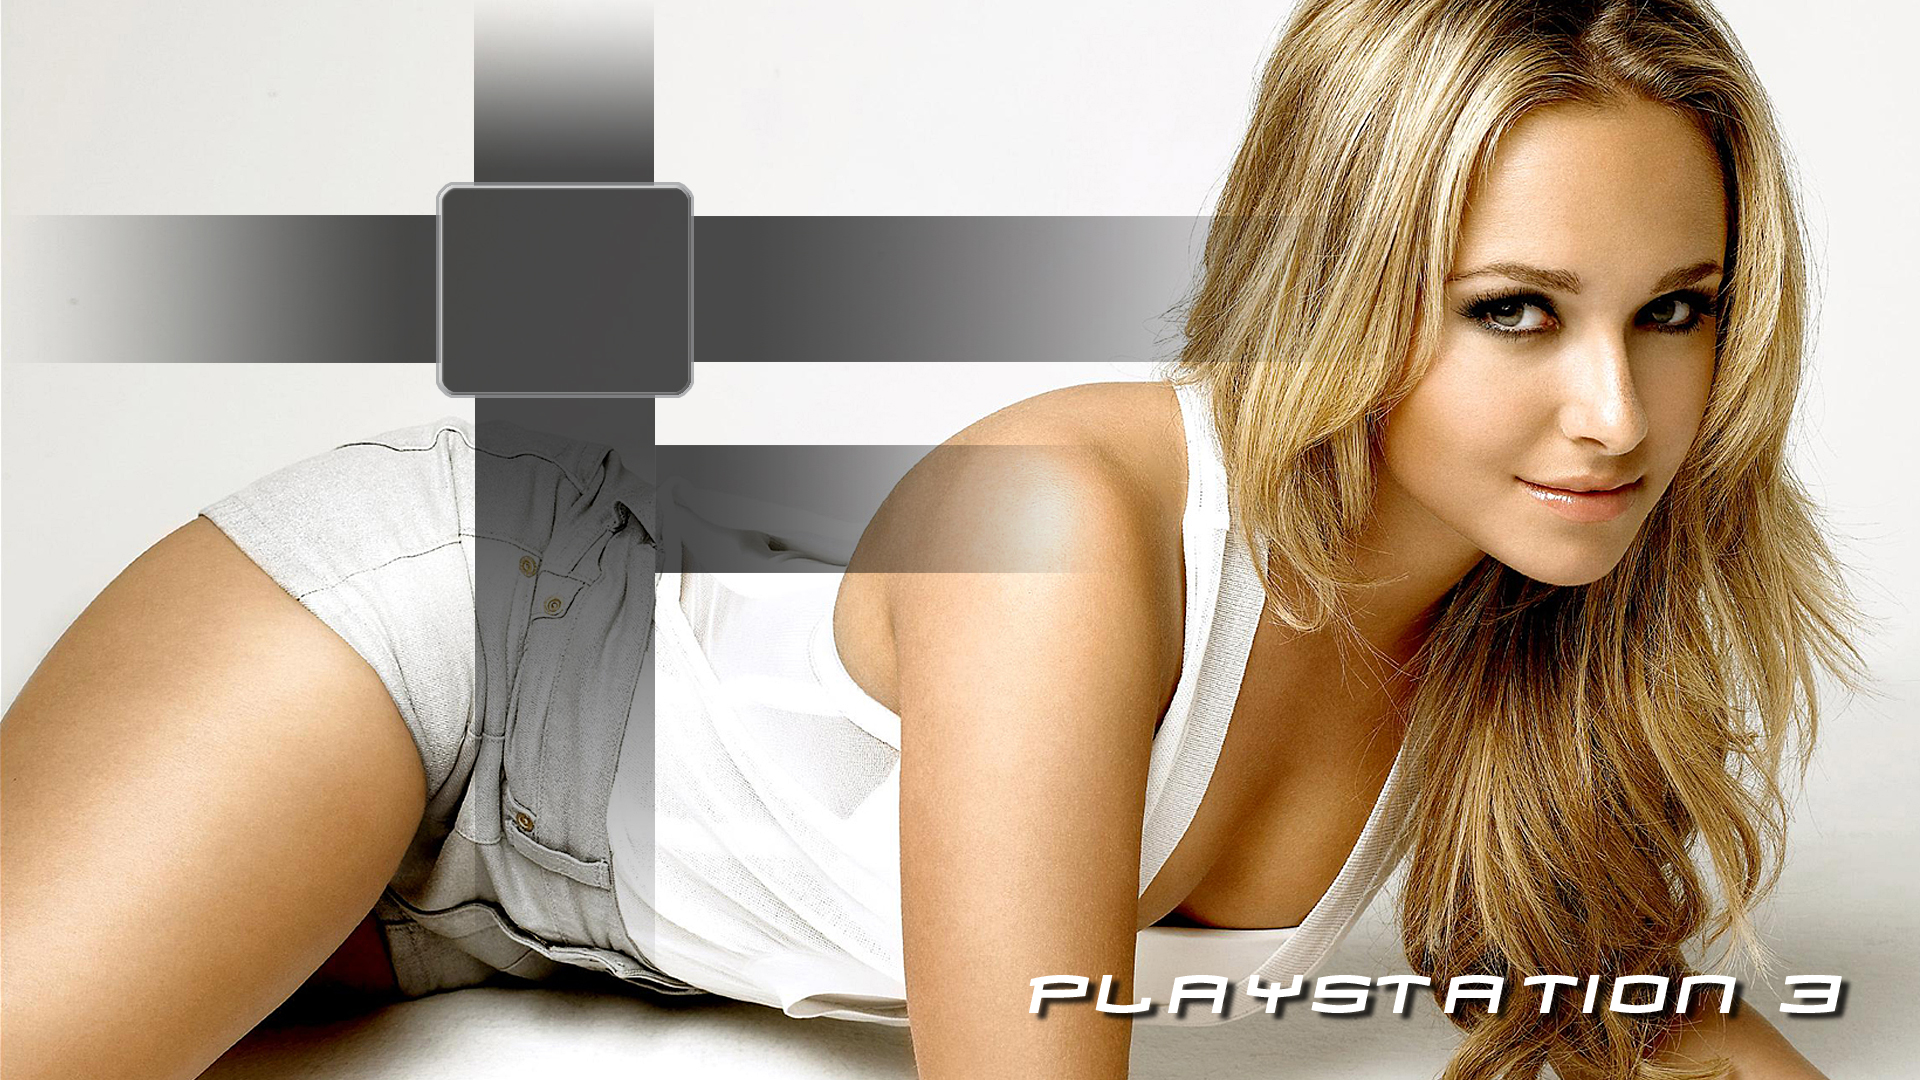 Uncensored adult wallpaper for ps3 porn picture